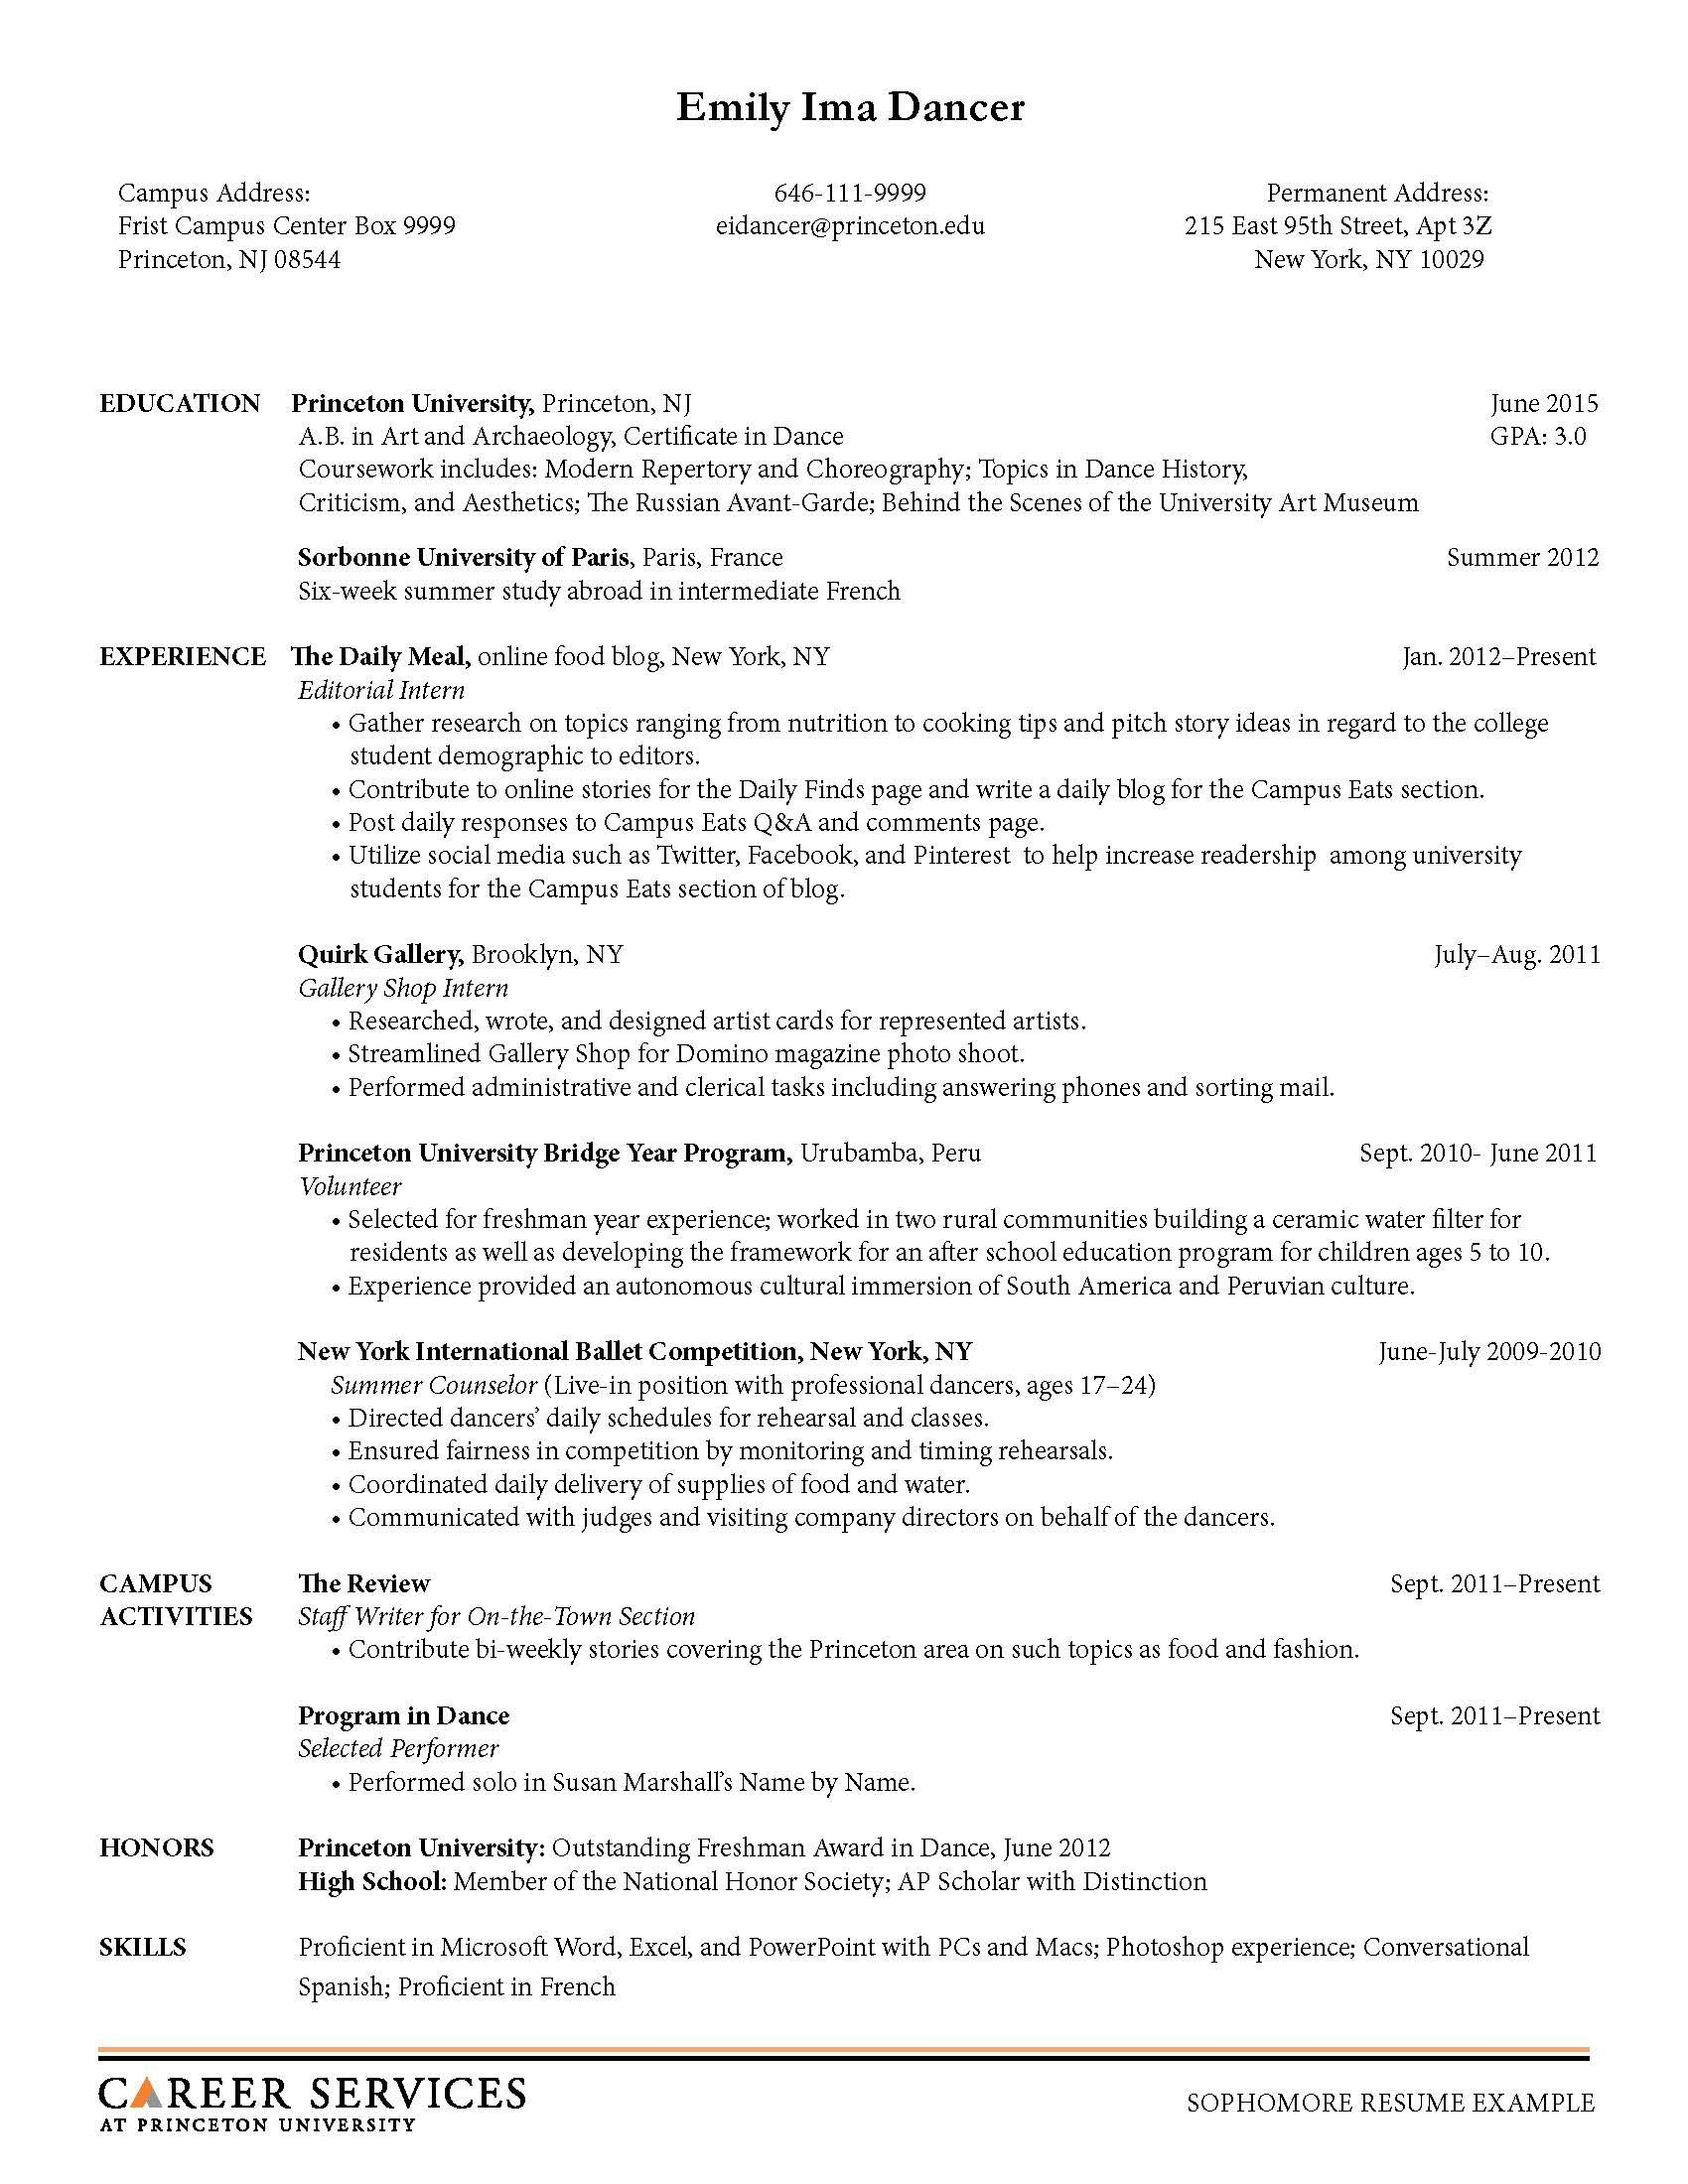 Picnictoimpeachus  Terrific Sample Resume Resume And Career On Pinterest With Lovable Banking Resume Examples Besides Word Templates Resume Furthermore Special Skills For Acting Resume With Amusing Microsoft Word Template Resume Also Sales Associate Resume Description In Addition Your Resume And Make A Resume For Free Online As Well As How To Construct A Resume Additionally Administrative Assistant Duties Resume From Pinterestcom With Picnictoimpeachus  Lovable Sample Resume Resume And Career On Pinterest With Amusing Banking Resume Examples Besides Word Templates Resume Furthermore Special Skills For Acting Resume And Terrific Microsoft Word Template Resume Also Sales Associate Resume Description In Addition Your Resume From Pinterestcom